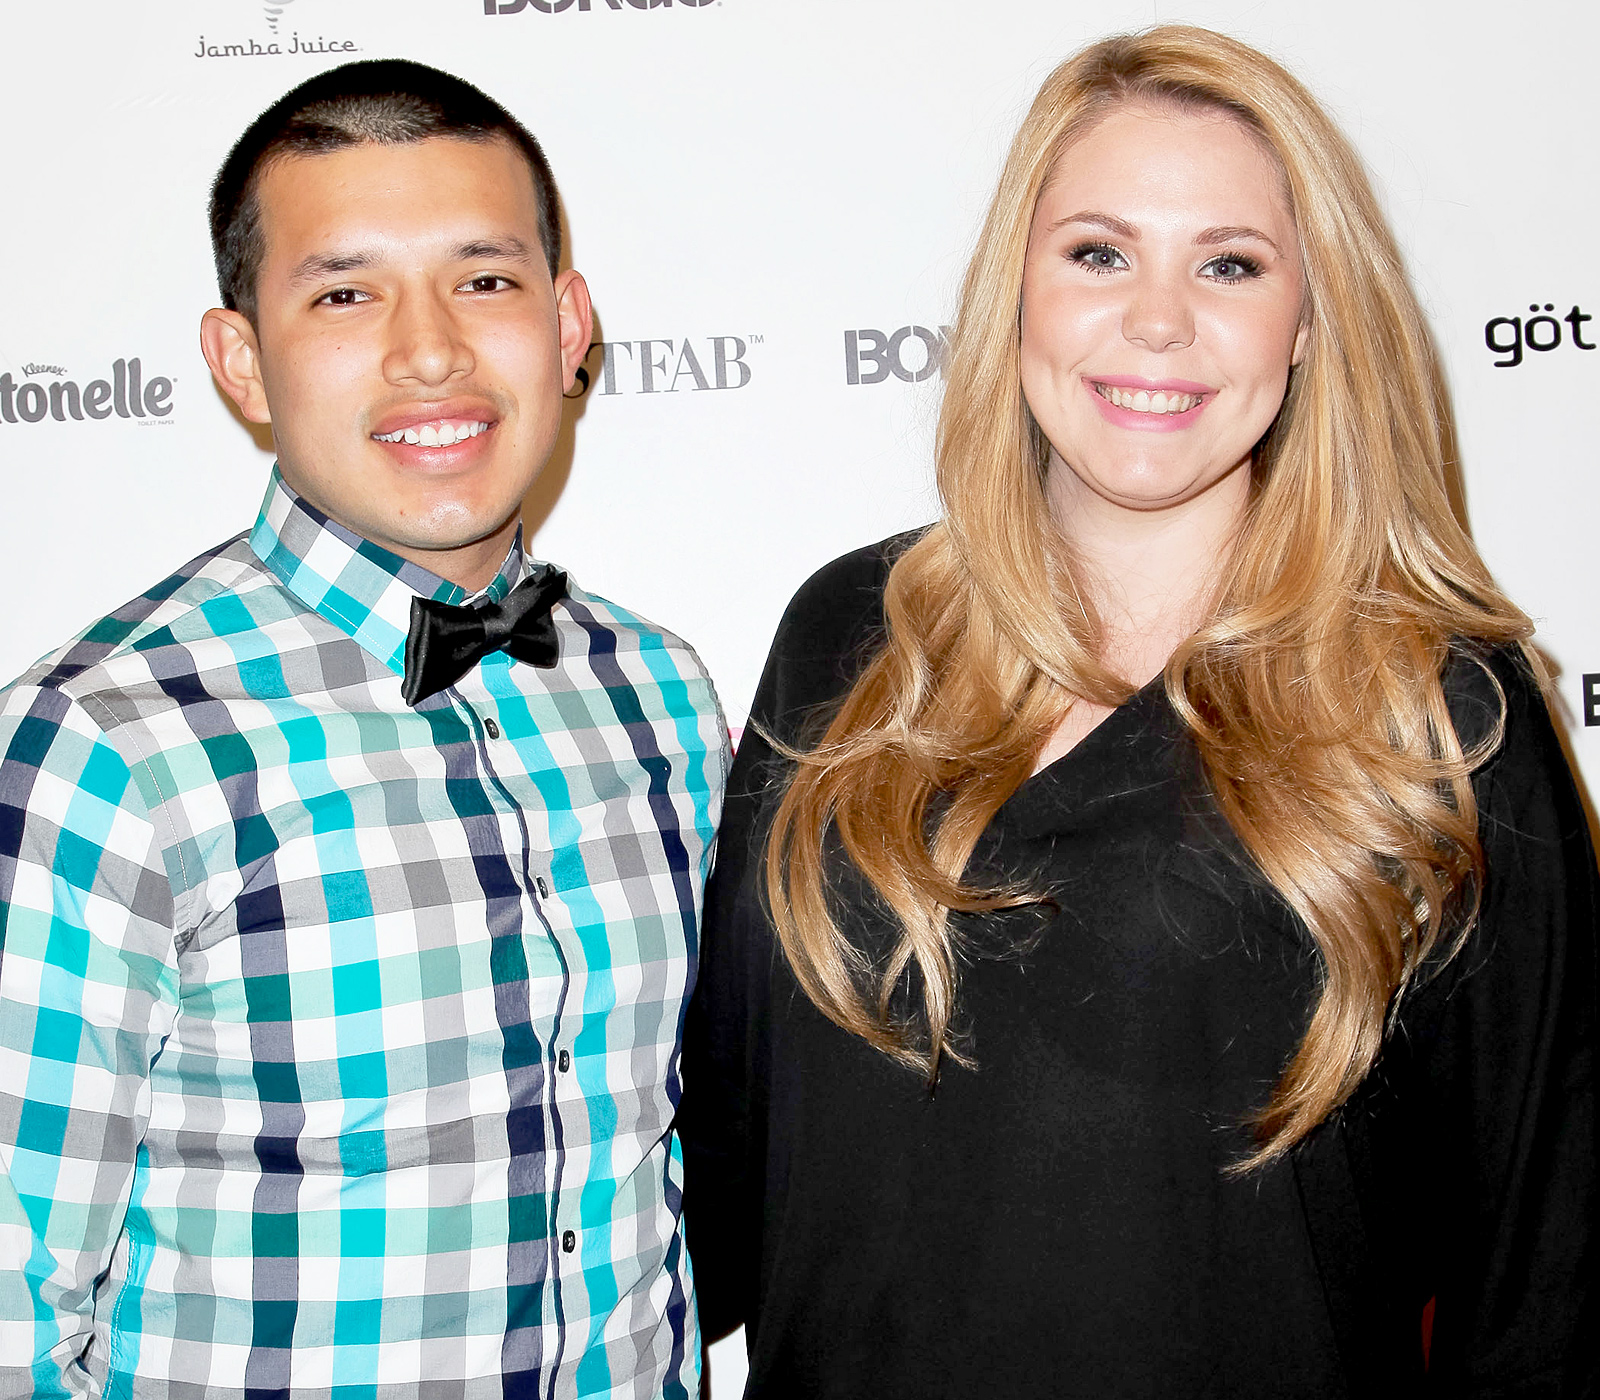 Teen Mom's Javi Marroquin Reacts to Kailyn Lowry's Plastic Surgery Decision